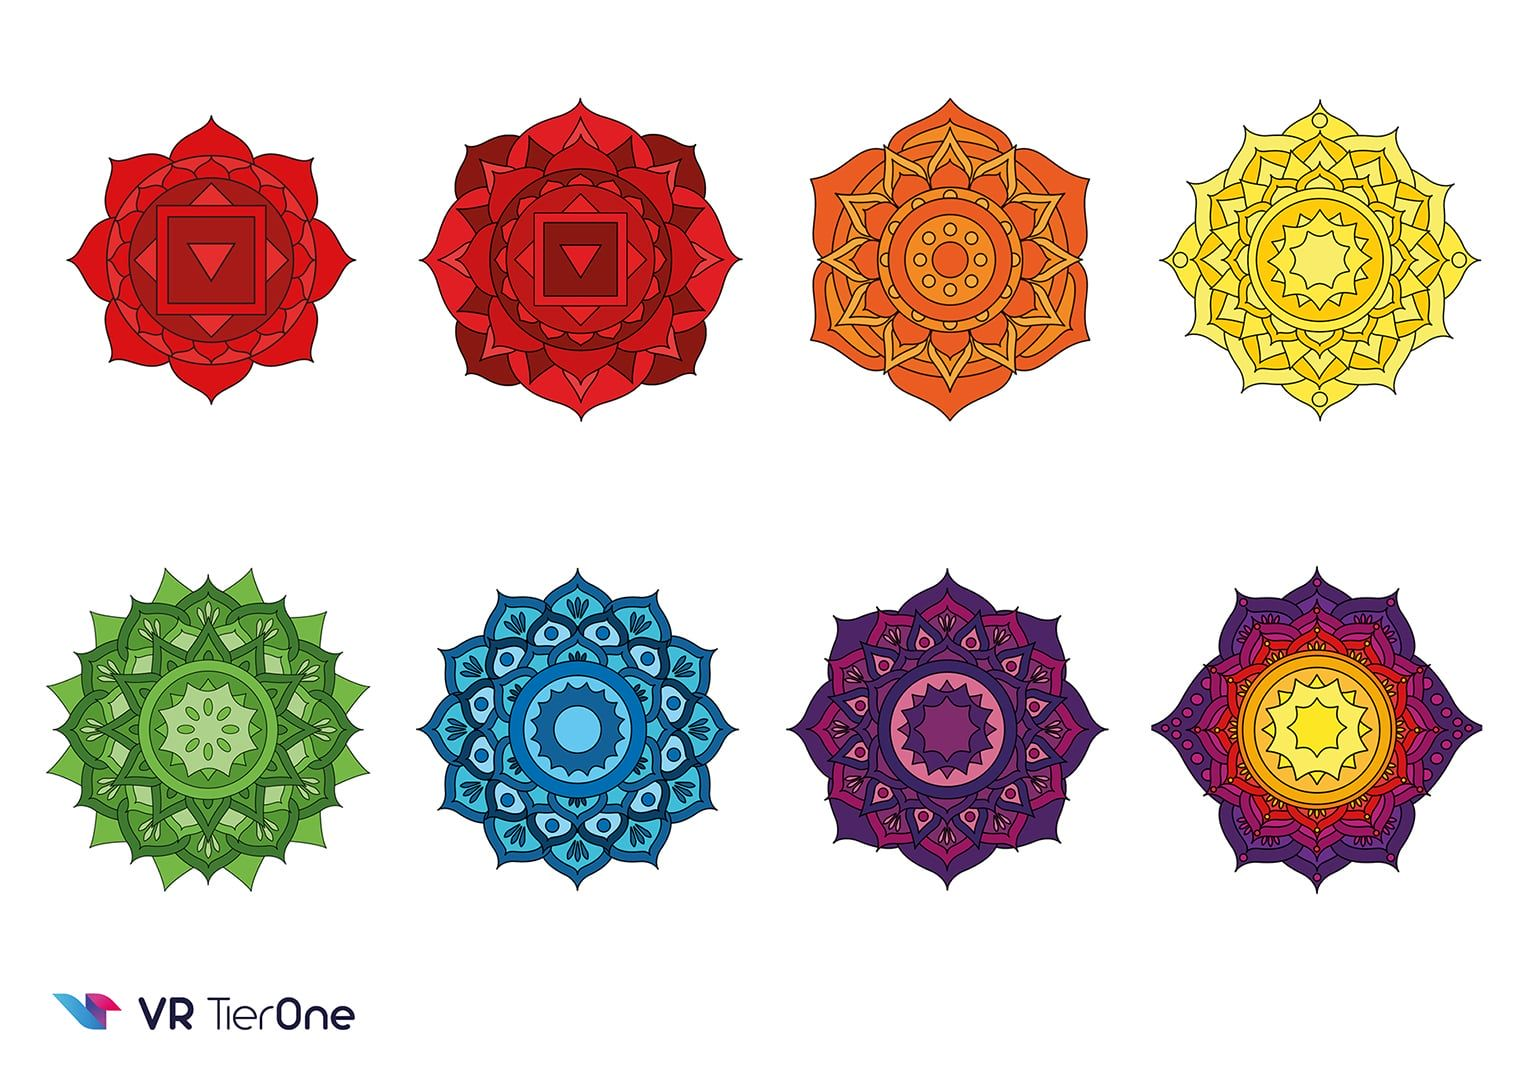 How to understand the mandala motif?